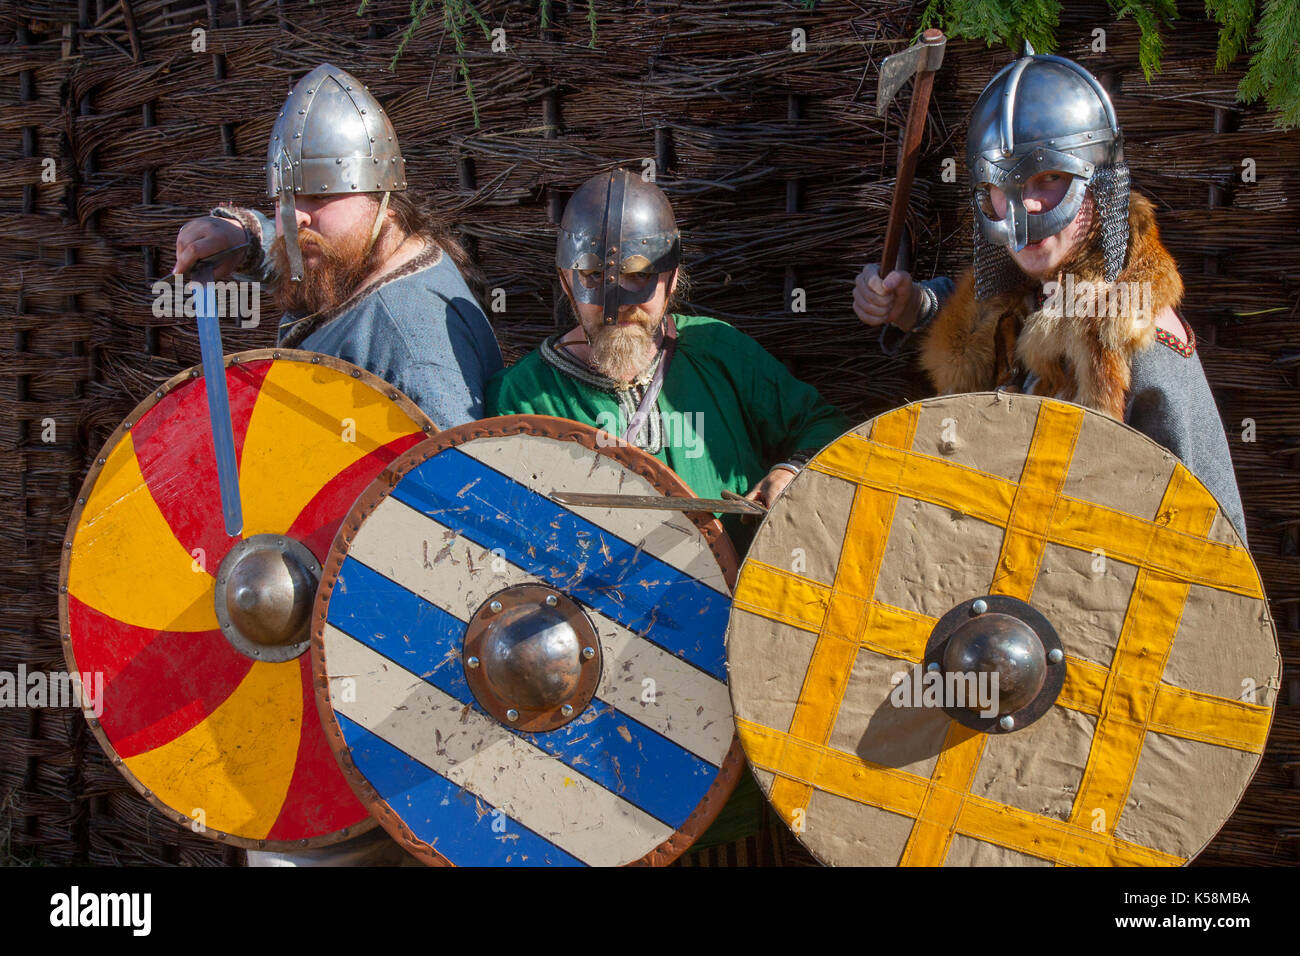 Viking warriors holding sword & shield at Largs, Scotland, UK. 9th Sep, 2017. The Battle of Largs (2 October 1263) Re-enactment event by the Swords of Dalriada, 13th Century, living history group. It was an indecisive engagement between the kingdoms of Norway and Scotland, on the Firth of Clyde near Largs, Scotland. The conflict formed part of the Norwegian expedition against Scotland in 1263, in which Haakon Haakonarson, King of Norway attempted to reassert Norwegian sovereignty over the western seaboard of Scotland. - Stock Image